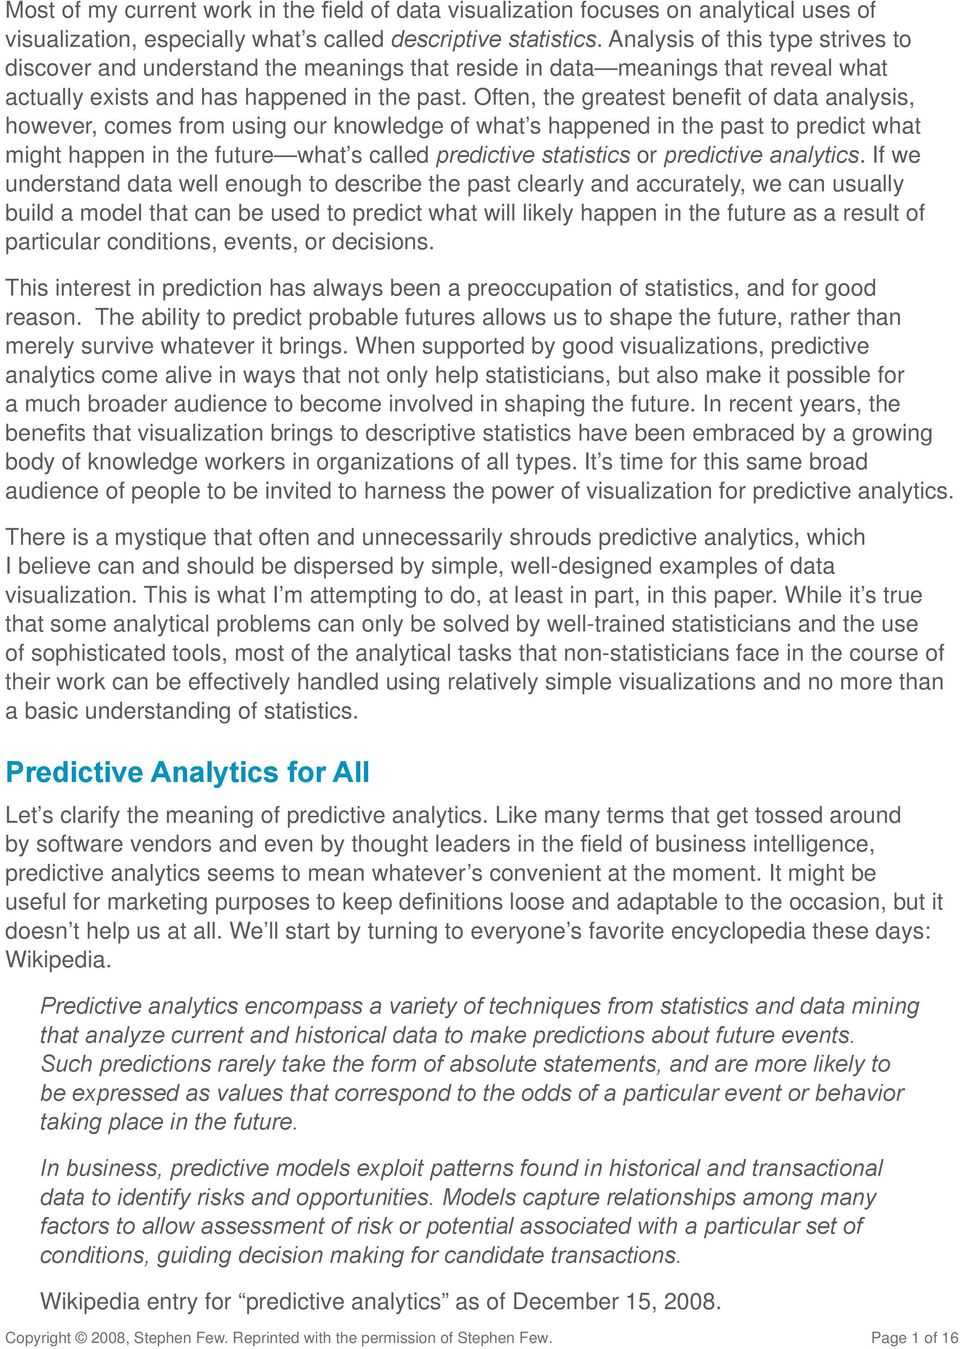 Often, the greatest benefi t of data analysis, however, comes from using our knowledge of what s happened in the past to predict what might happen in the future what s called predictive statistics or